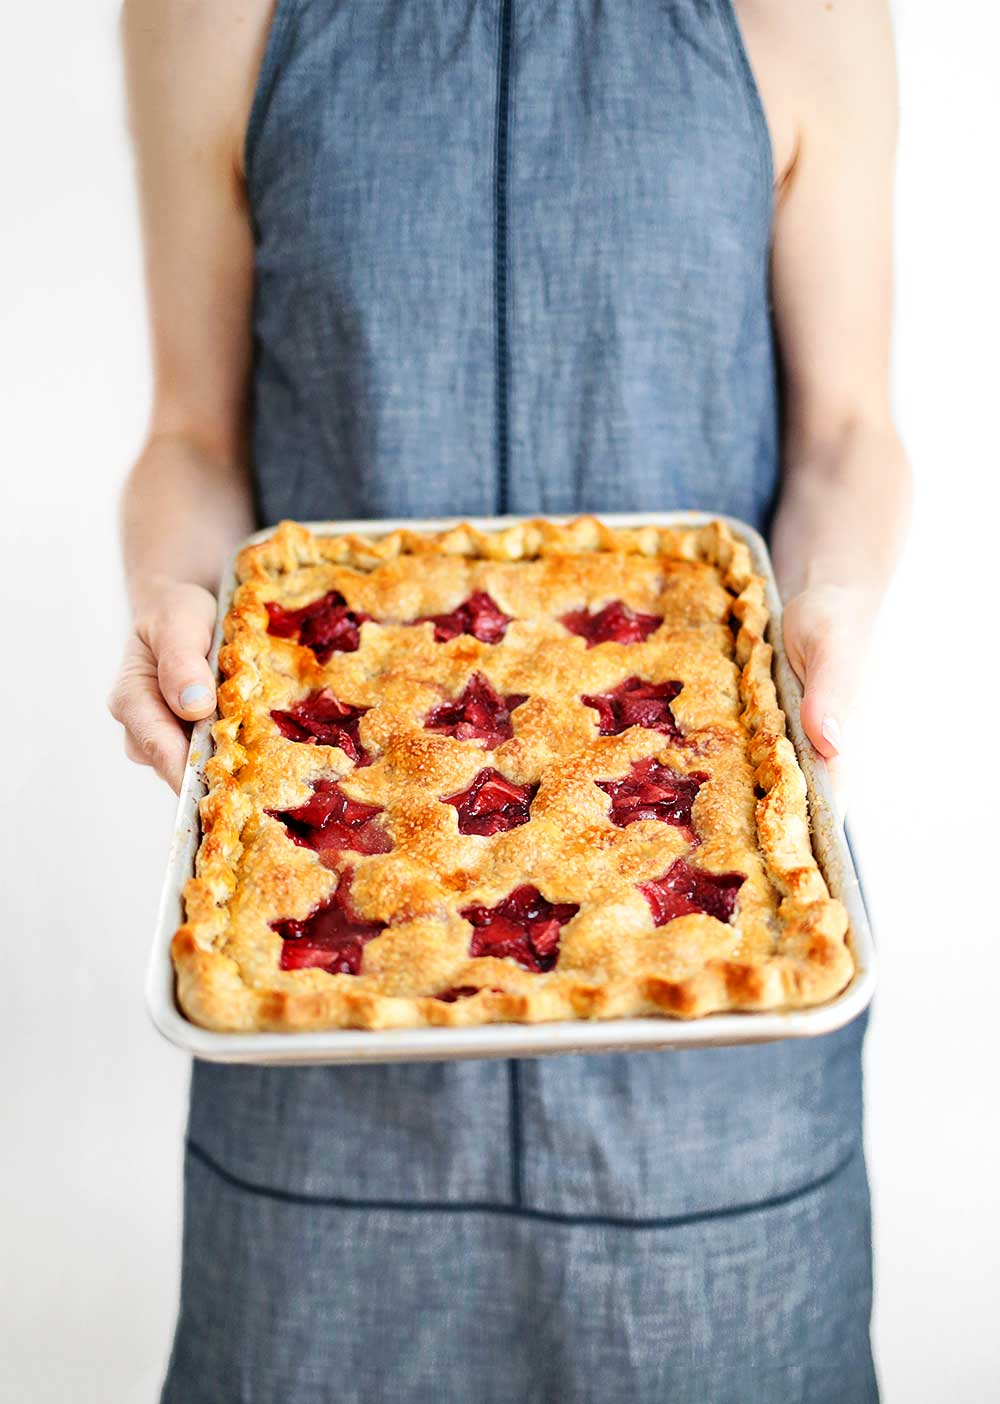 Holding a Strawberry Slab Pie from The Fauxmartha